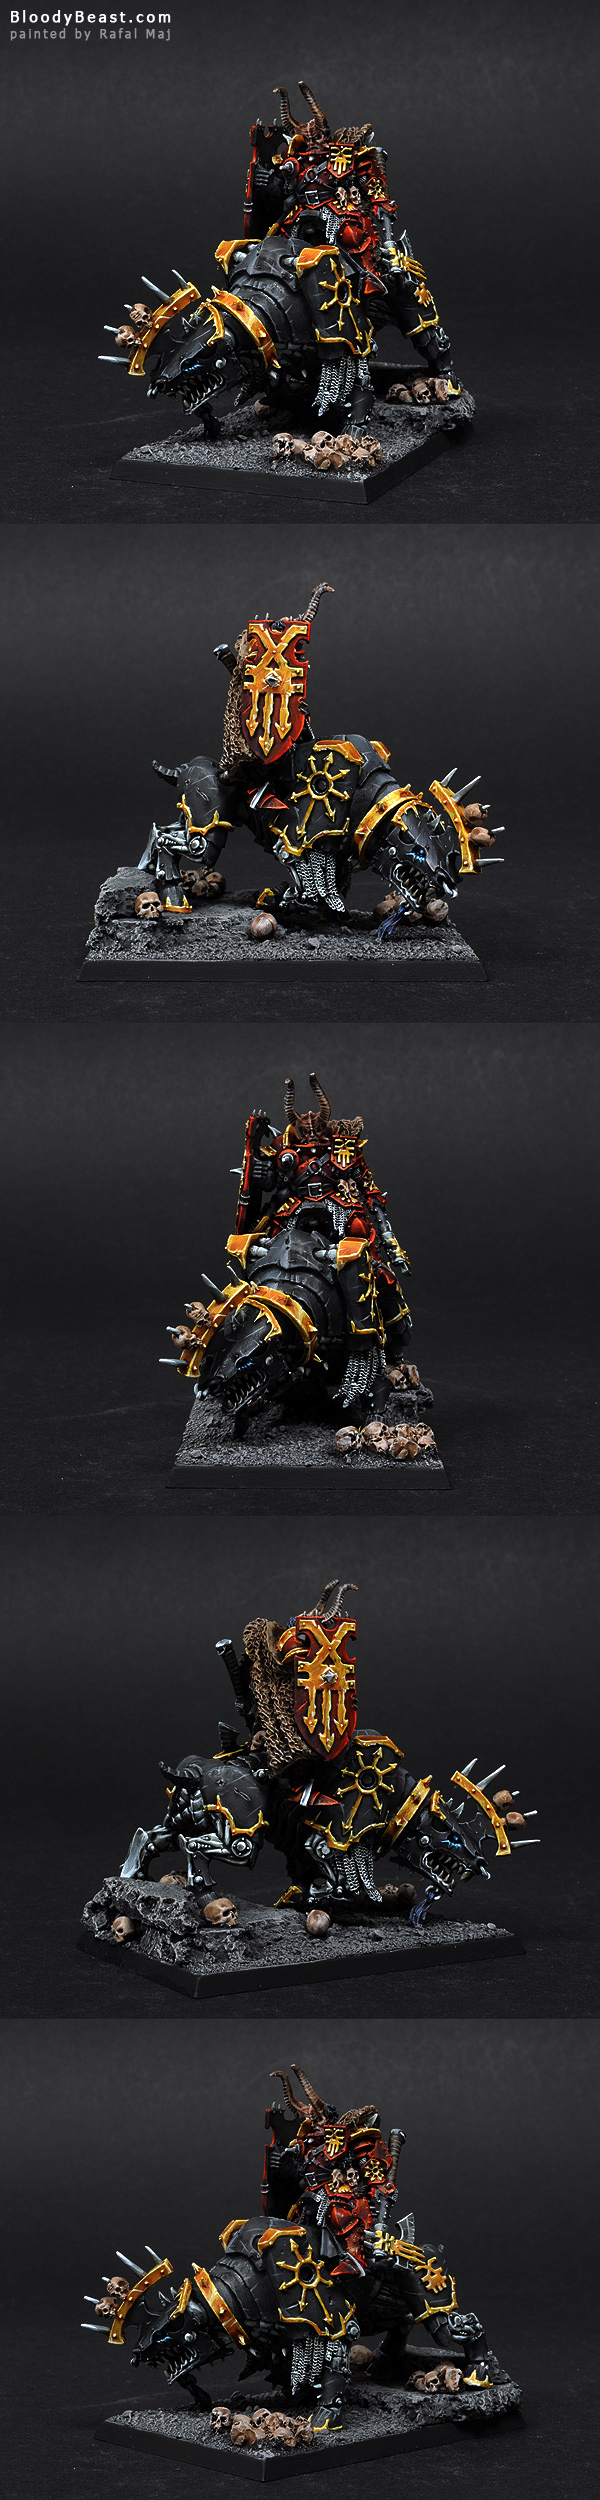 Lord Of Khorne On Juggernout painted by Rafal Maj (BloodyBeast.com)